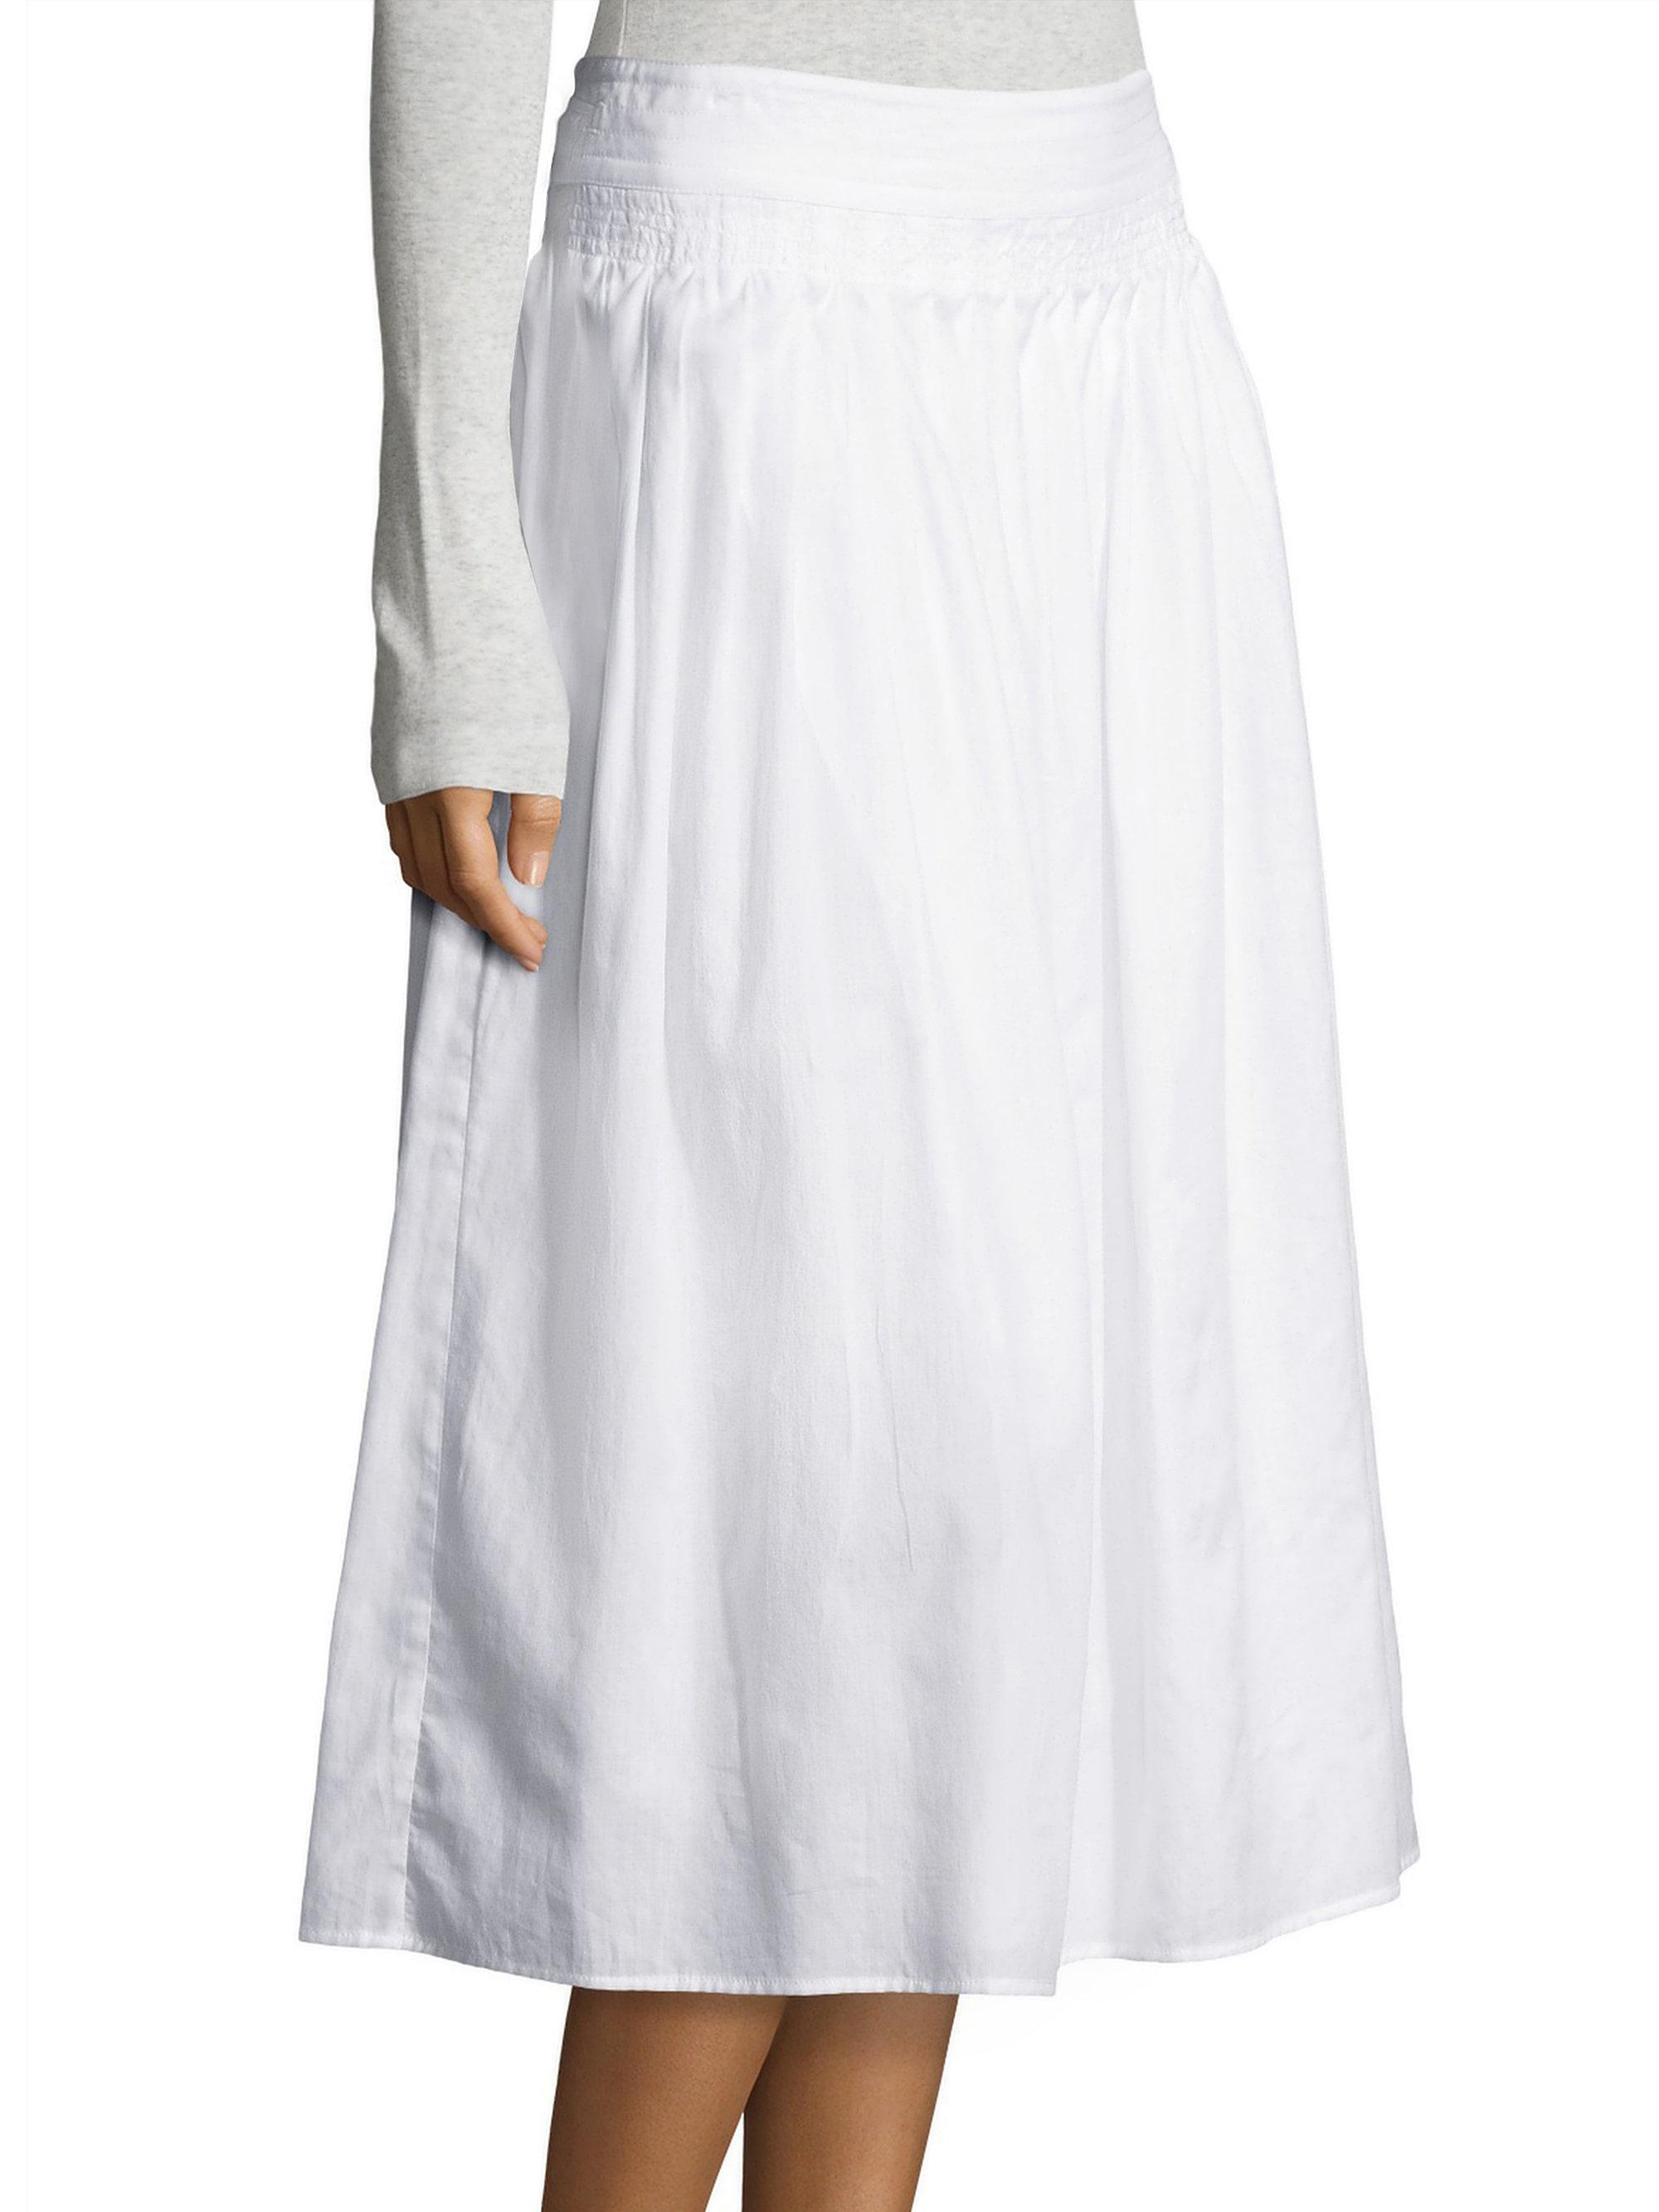 a177de5d09 Vince Stitch Pleated Wrap Skirt in White - Lyst